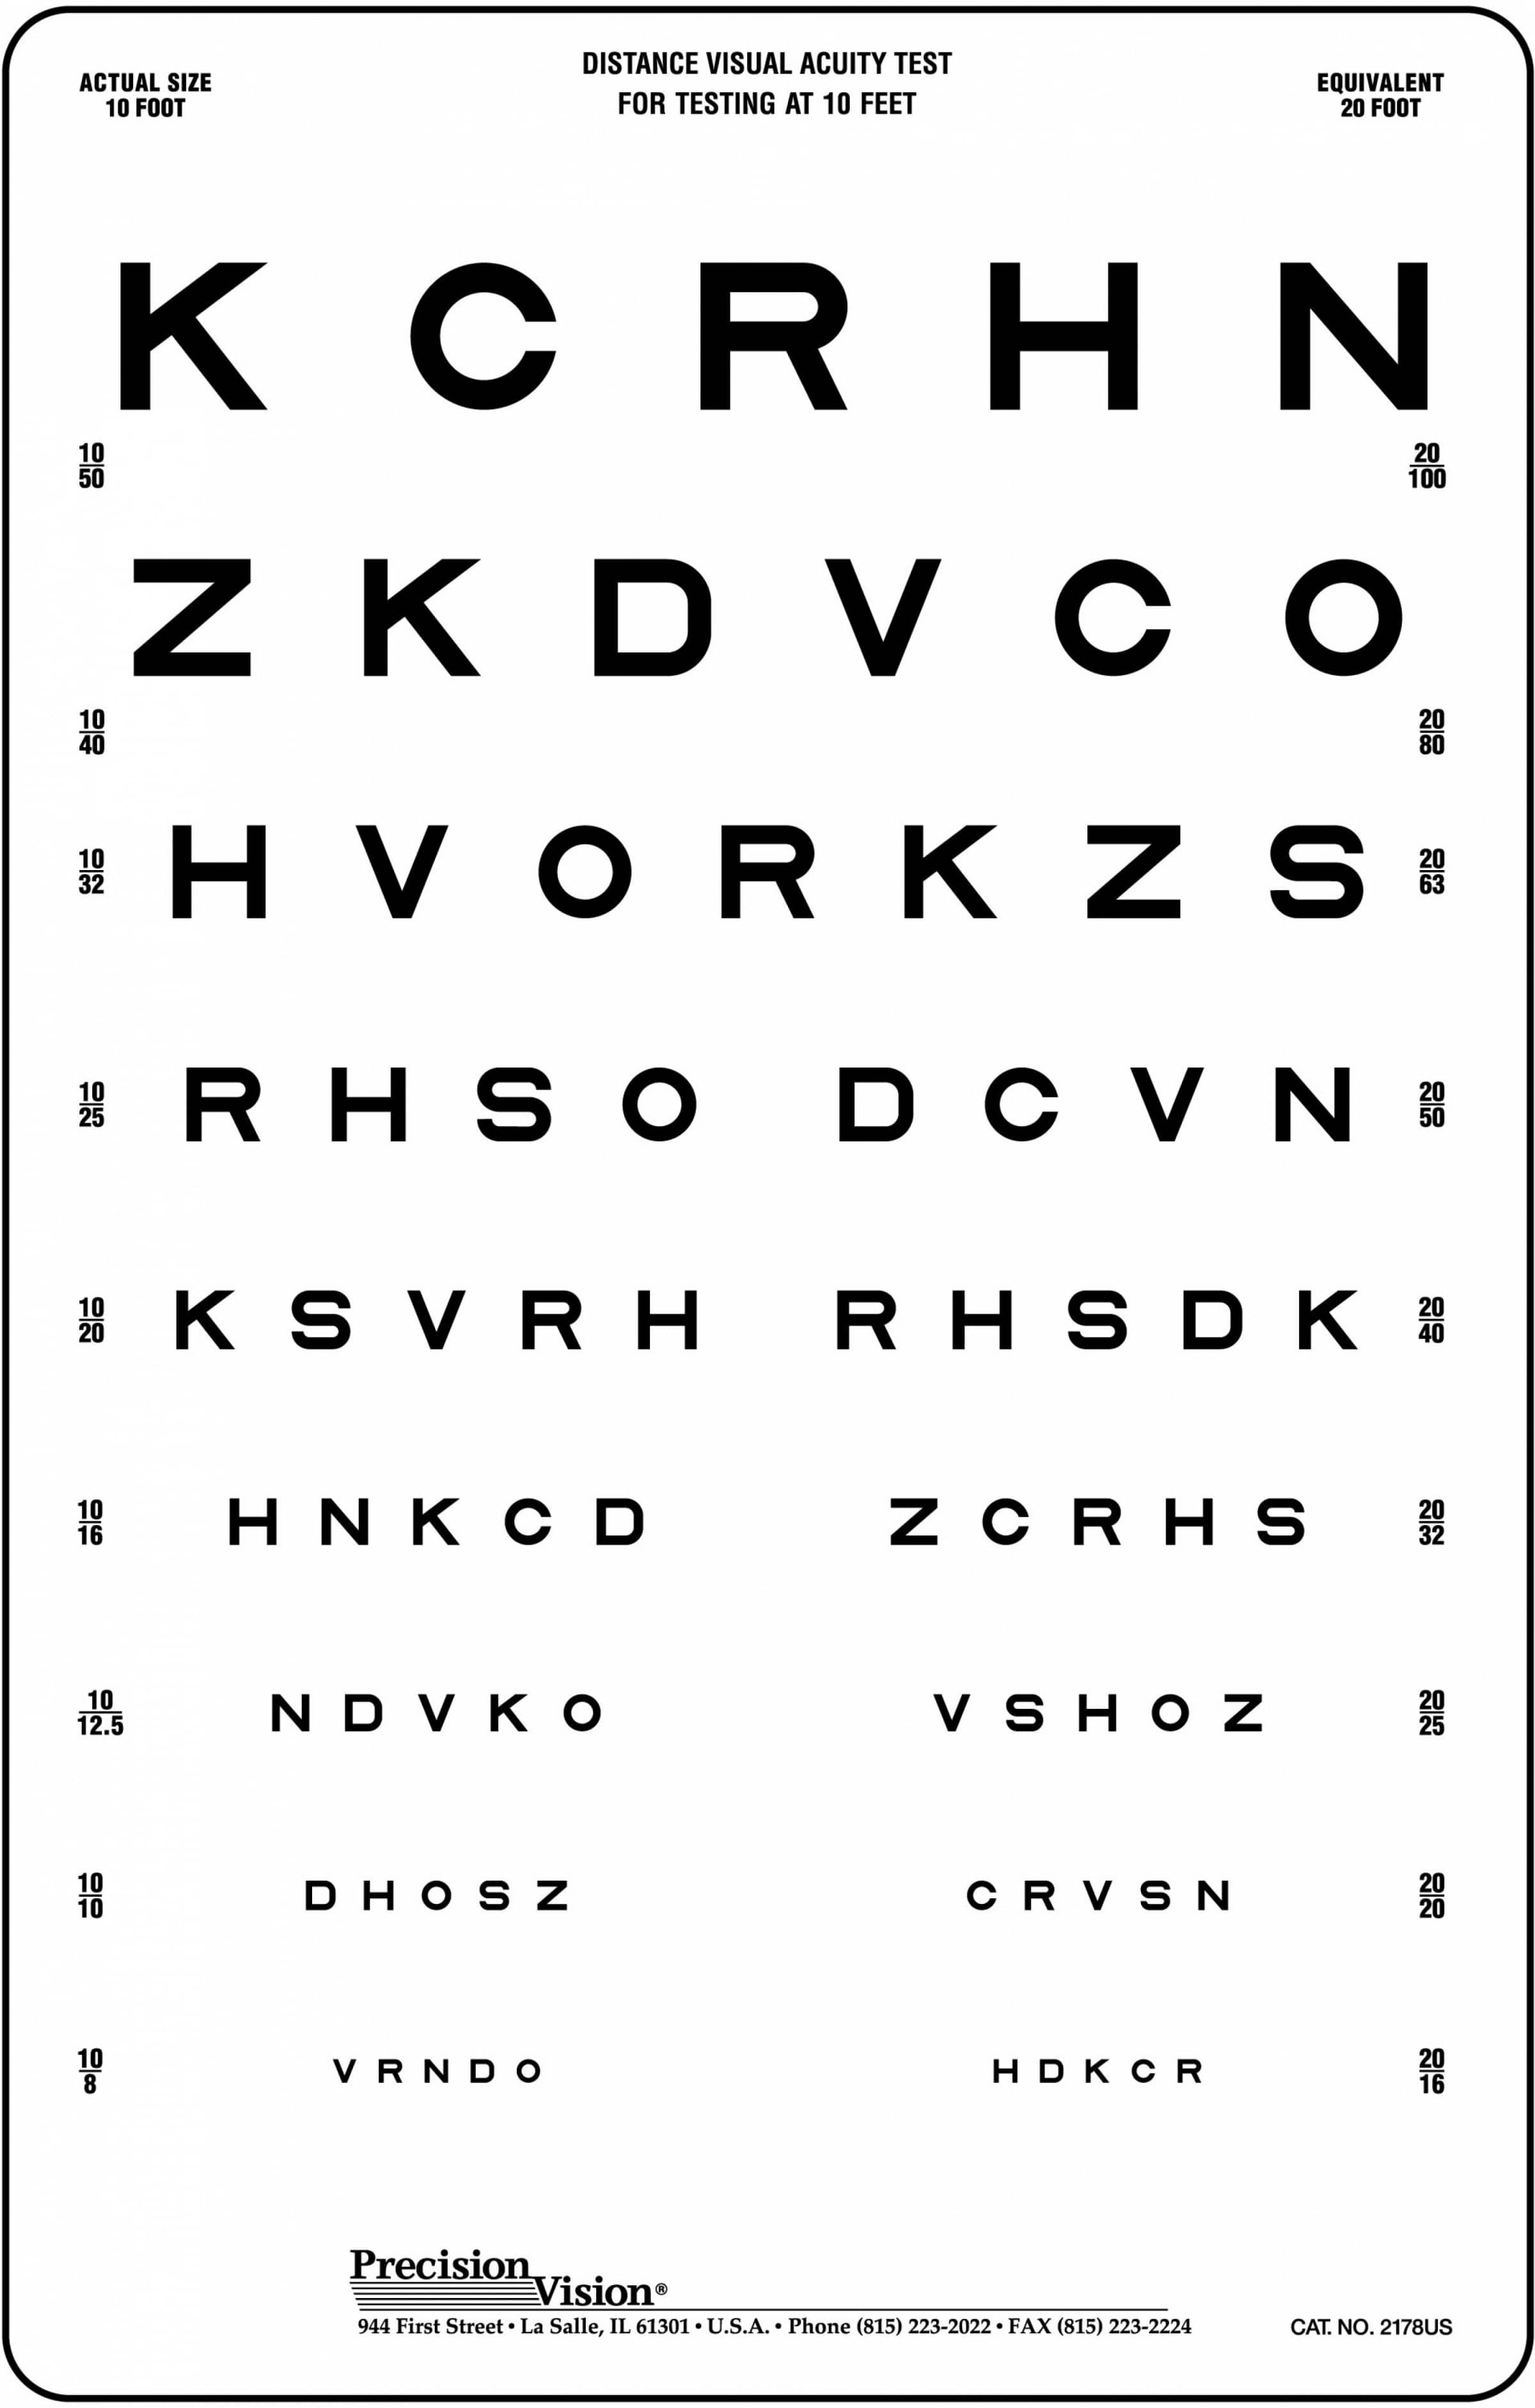 Linear spaced translucent sloan vision chart precision vision